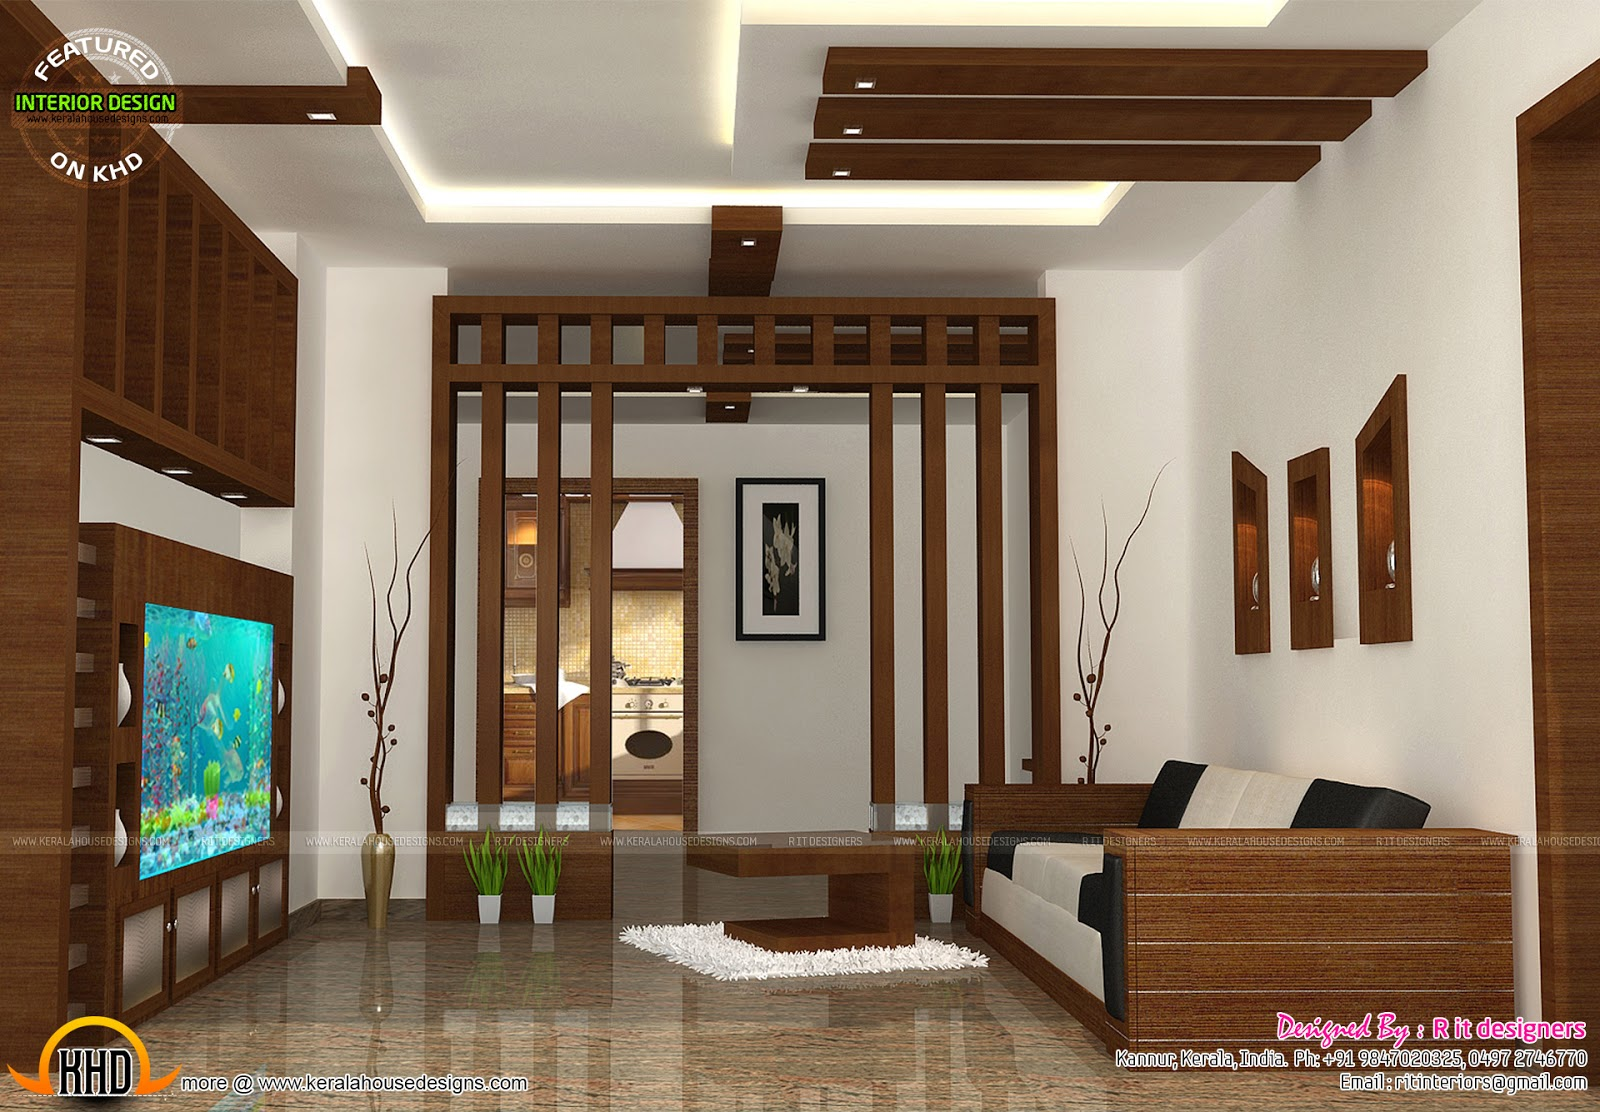 Wooden finish interiors kerala home design and floor plans for Home interior design india